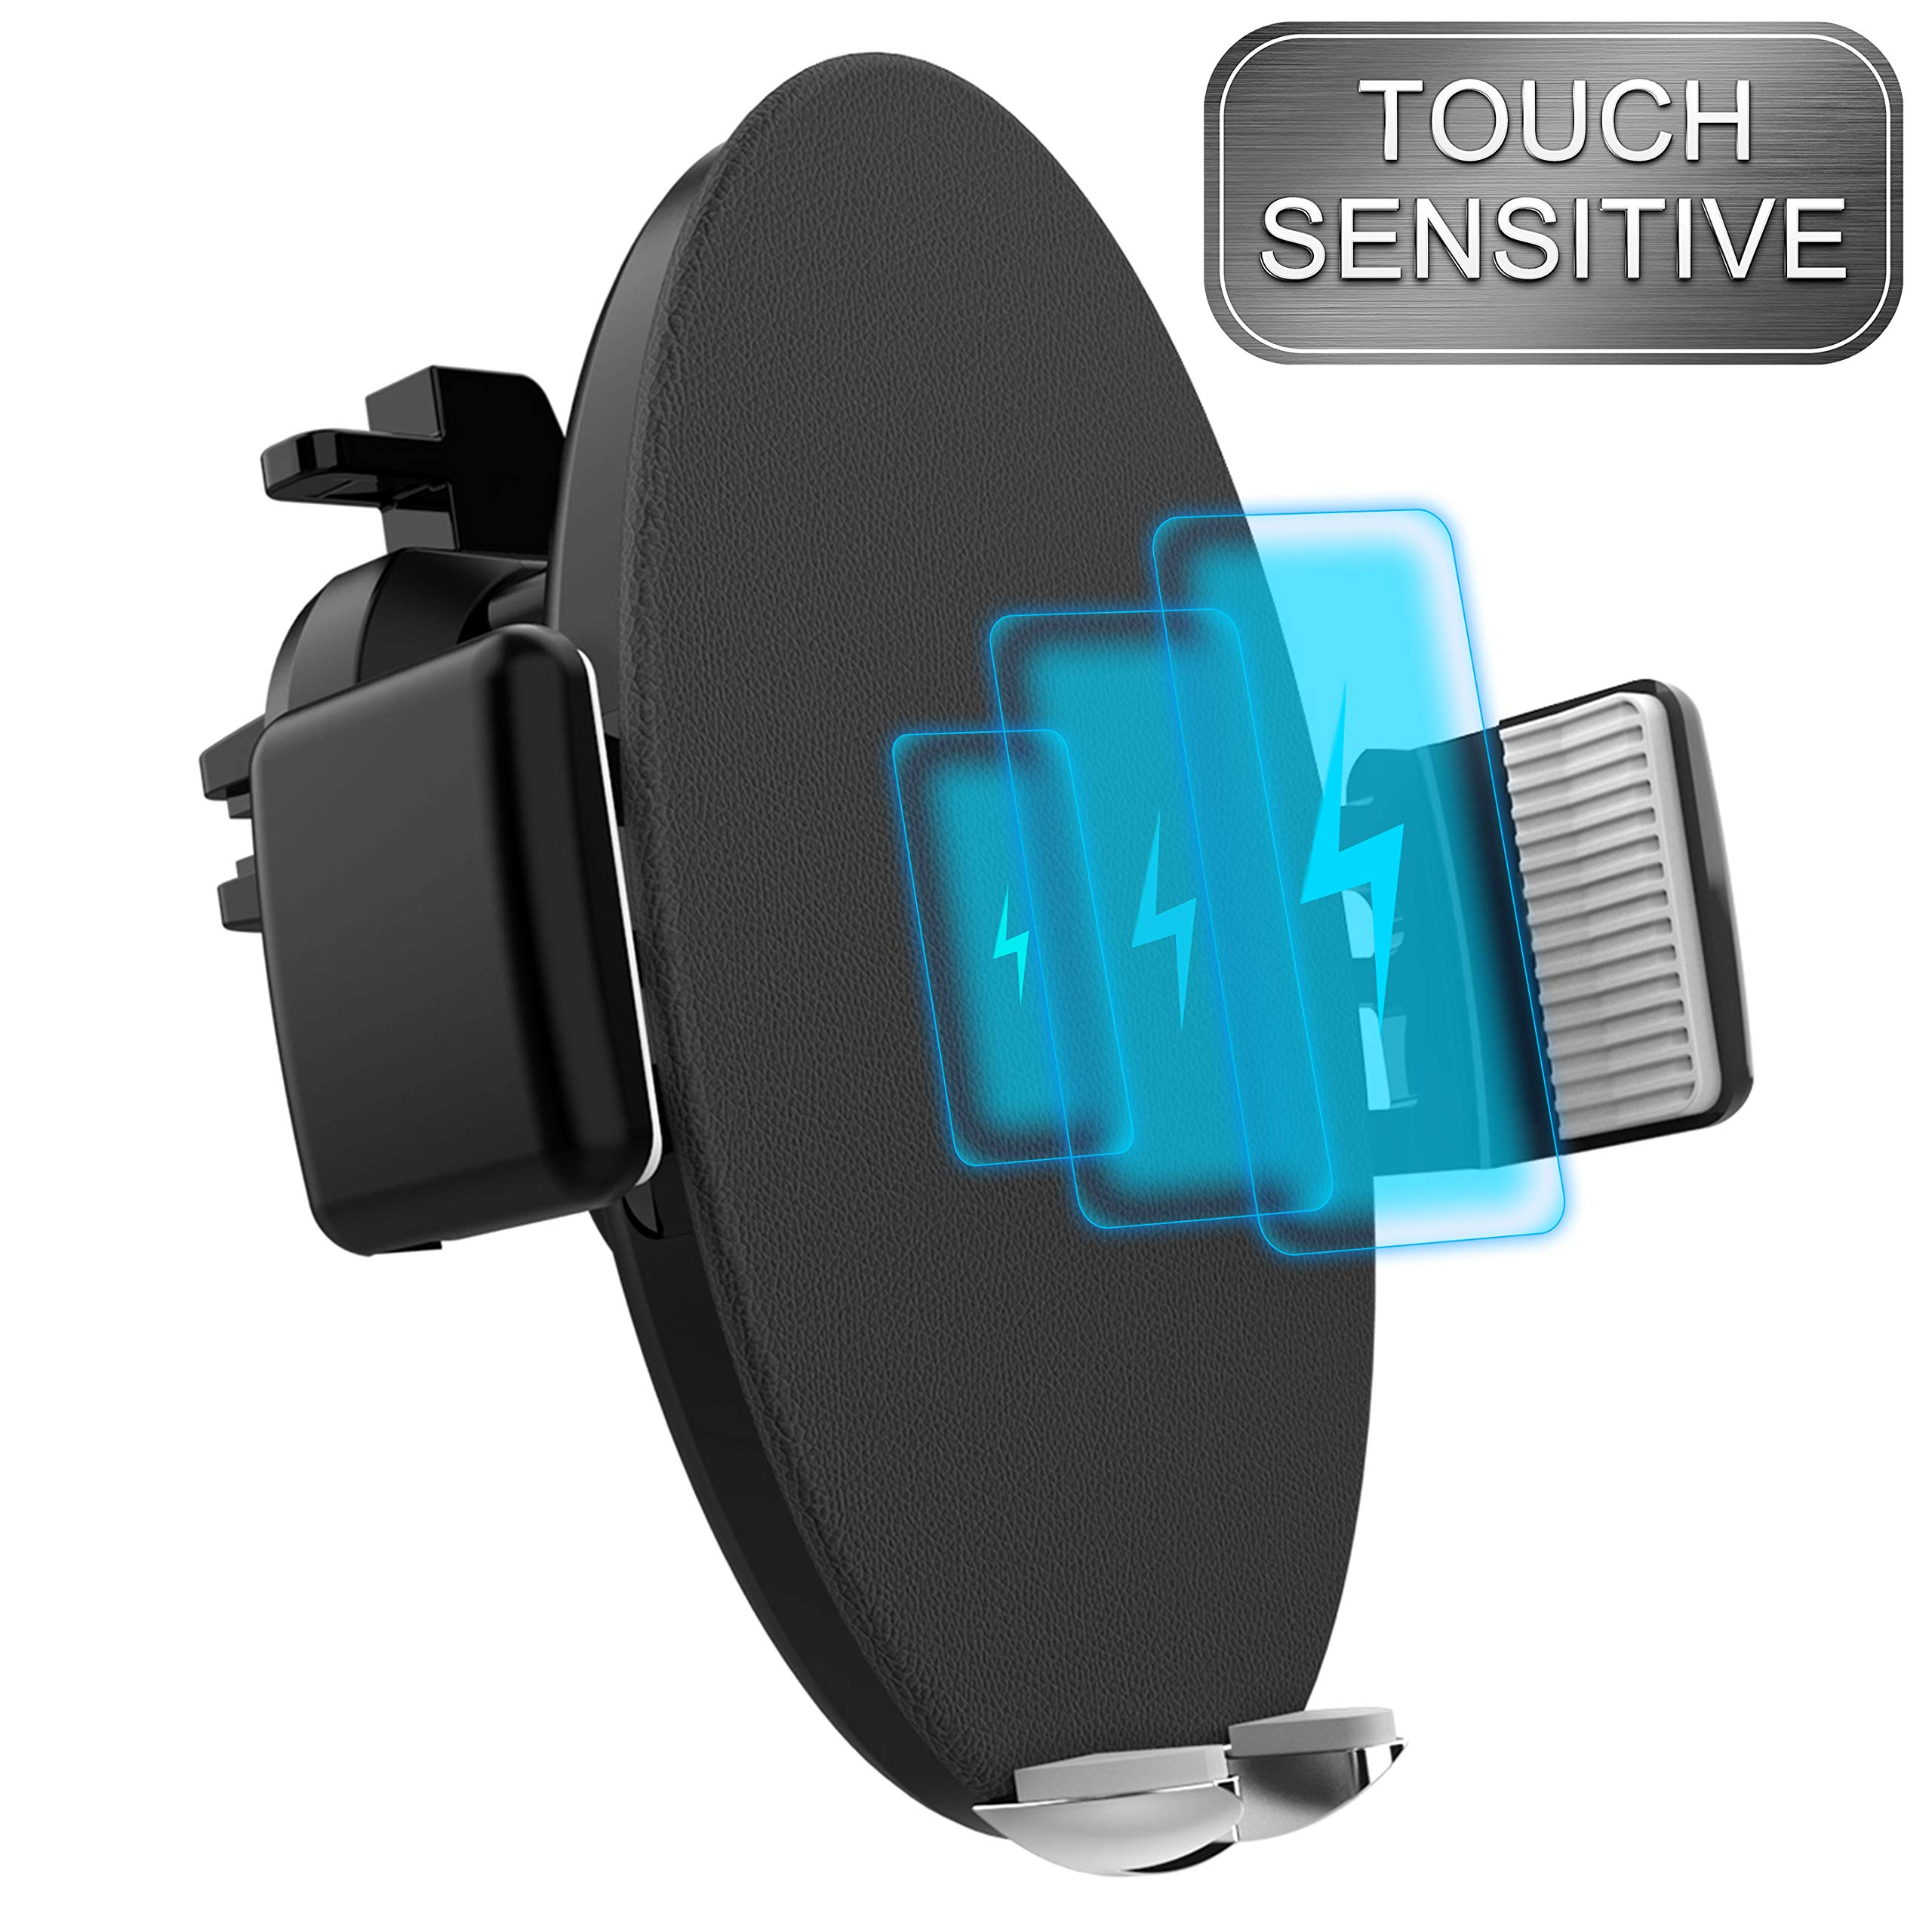 Touch Sensitive Car Mount Wireless Charger, Qi Fast Wireless Car Charger, One-Hand Operation Car Mount Compatible with Samsung Galaxy S9/S8/S7/S7 Edge/S7 Edge, Note and More